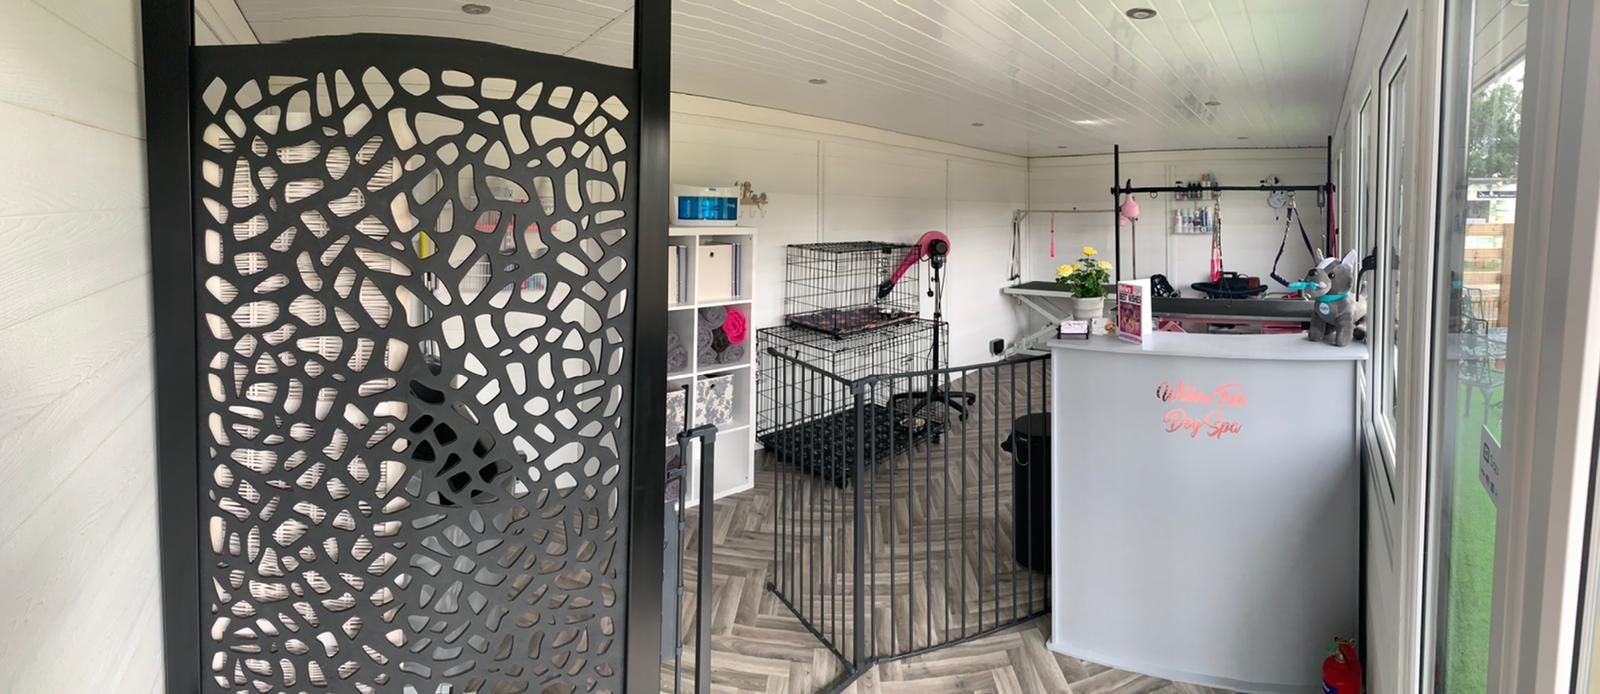 Peterborough Garden Room Dog Groomer Finishing Inside Piece